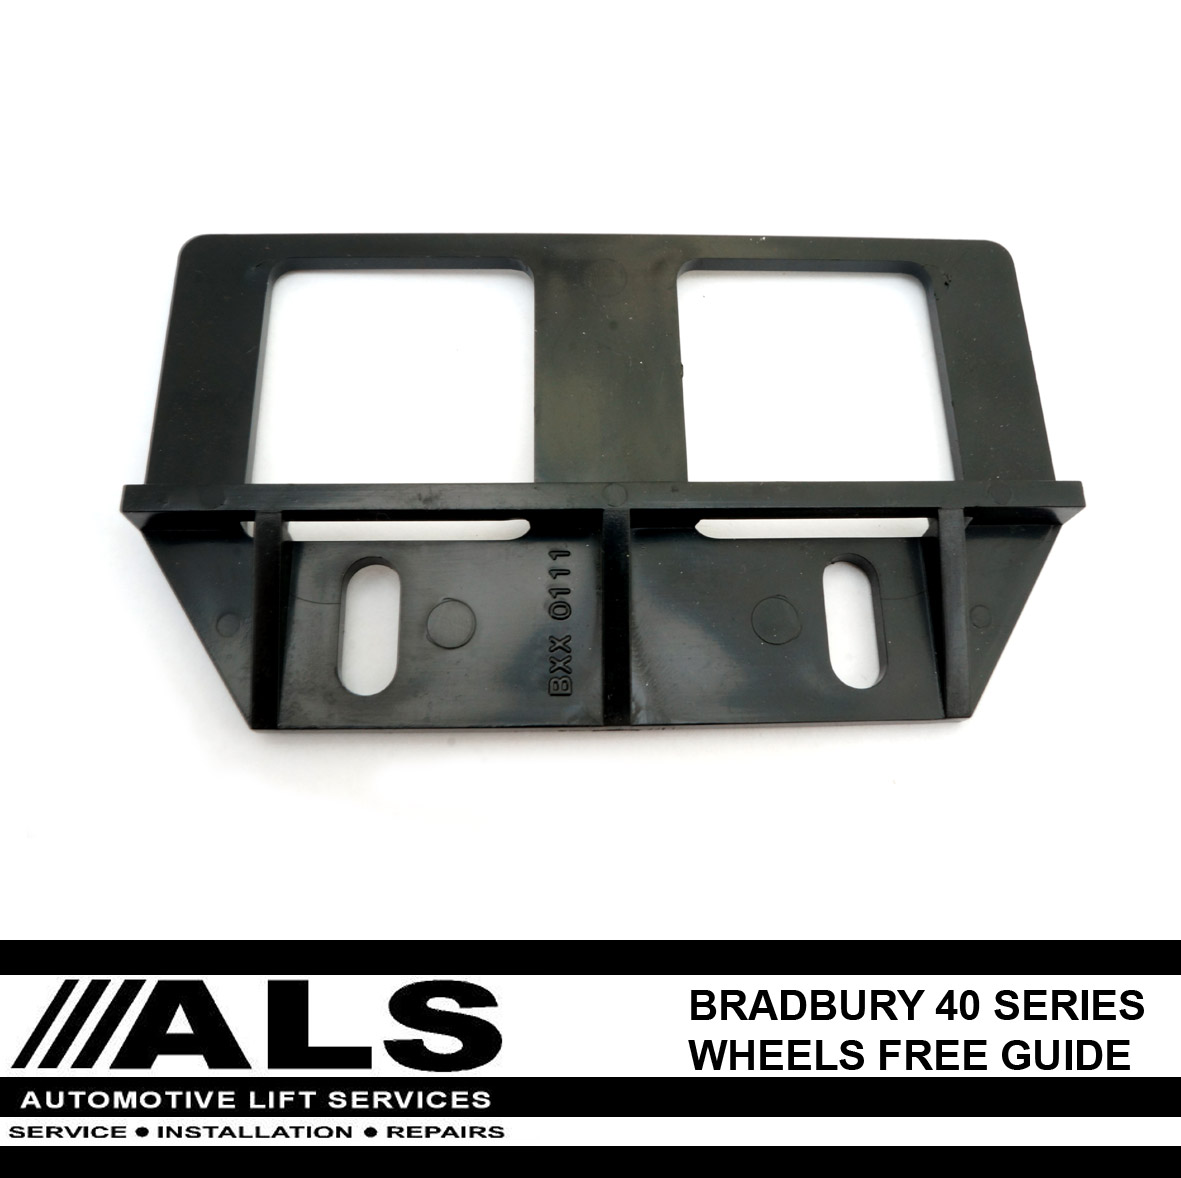 https://www.automotiveliftservices.co.uk/wp-content/uploads/2018/08/Bradbury-40s-Wheels-Free-Guide.jpg